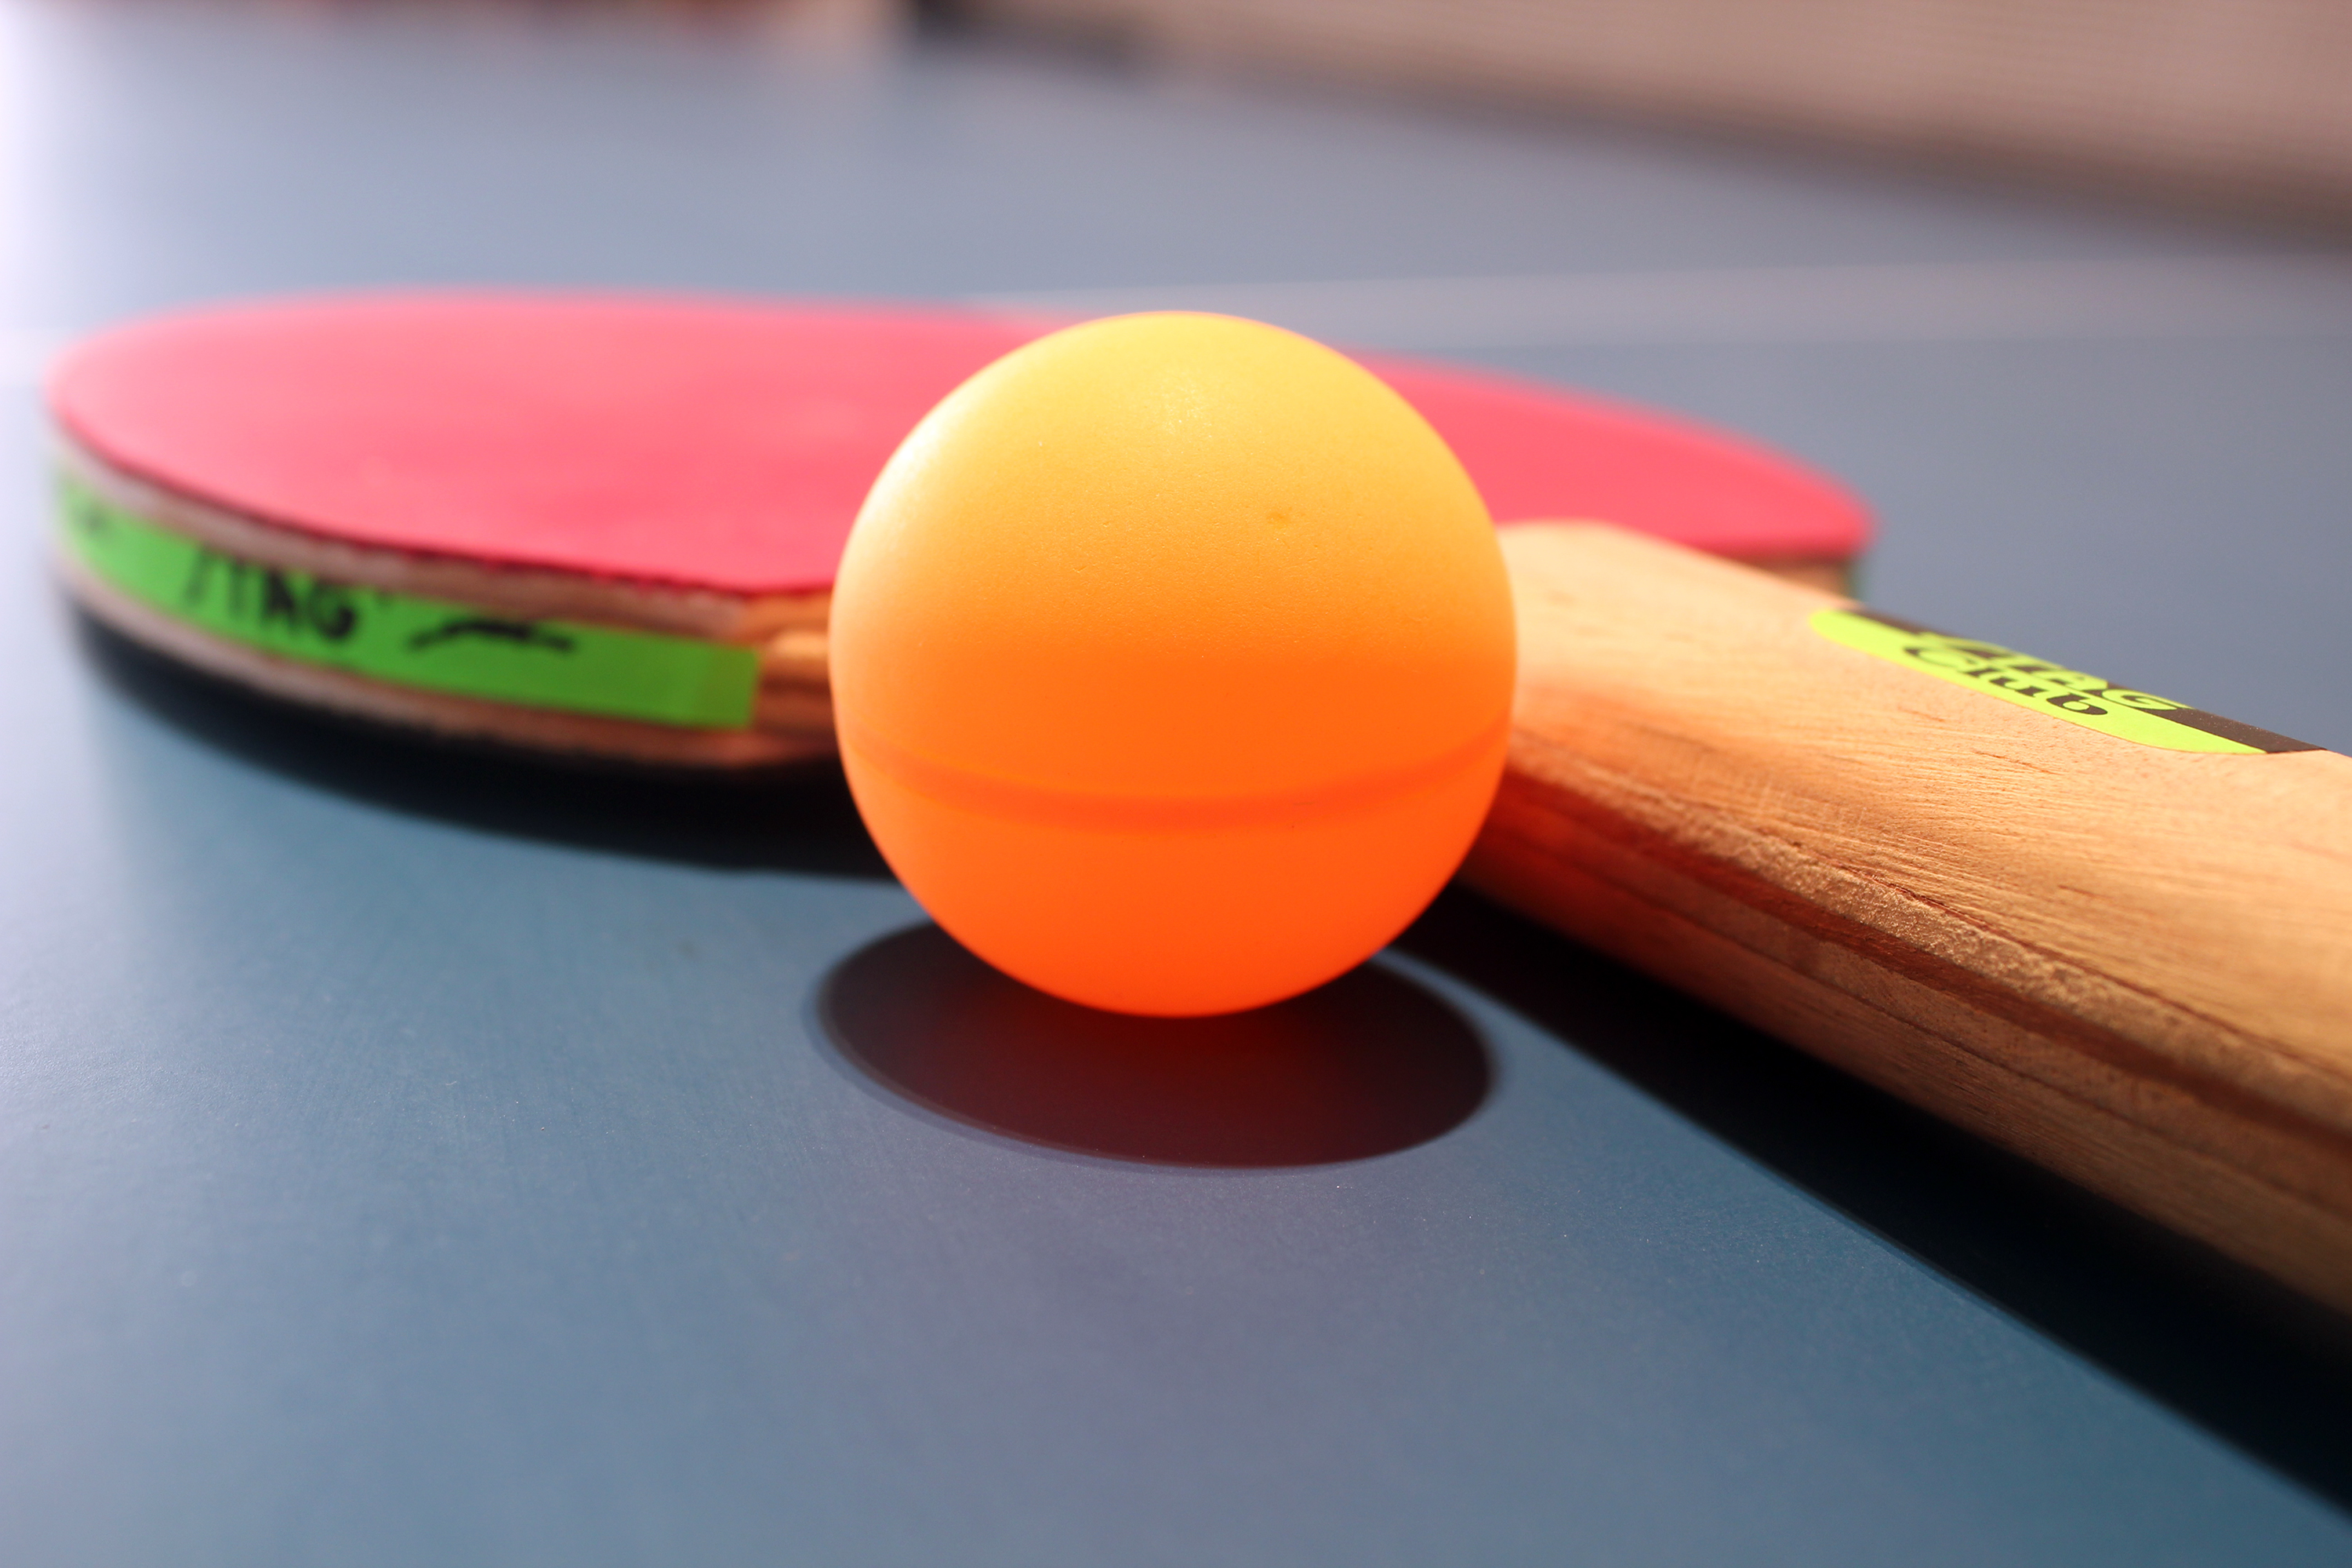 table tennis ball and racket on ping pong table f5jpg 3000x2000